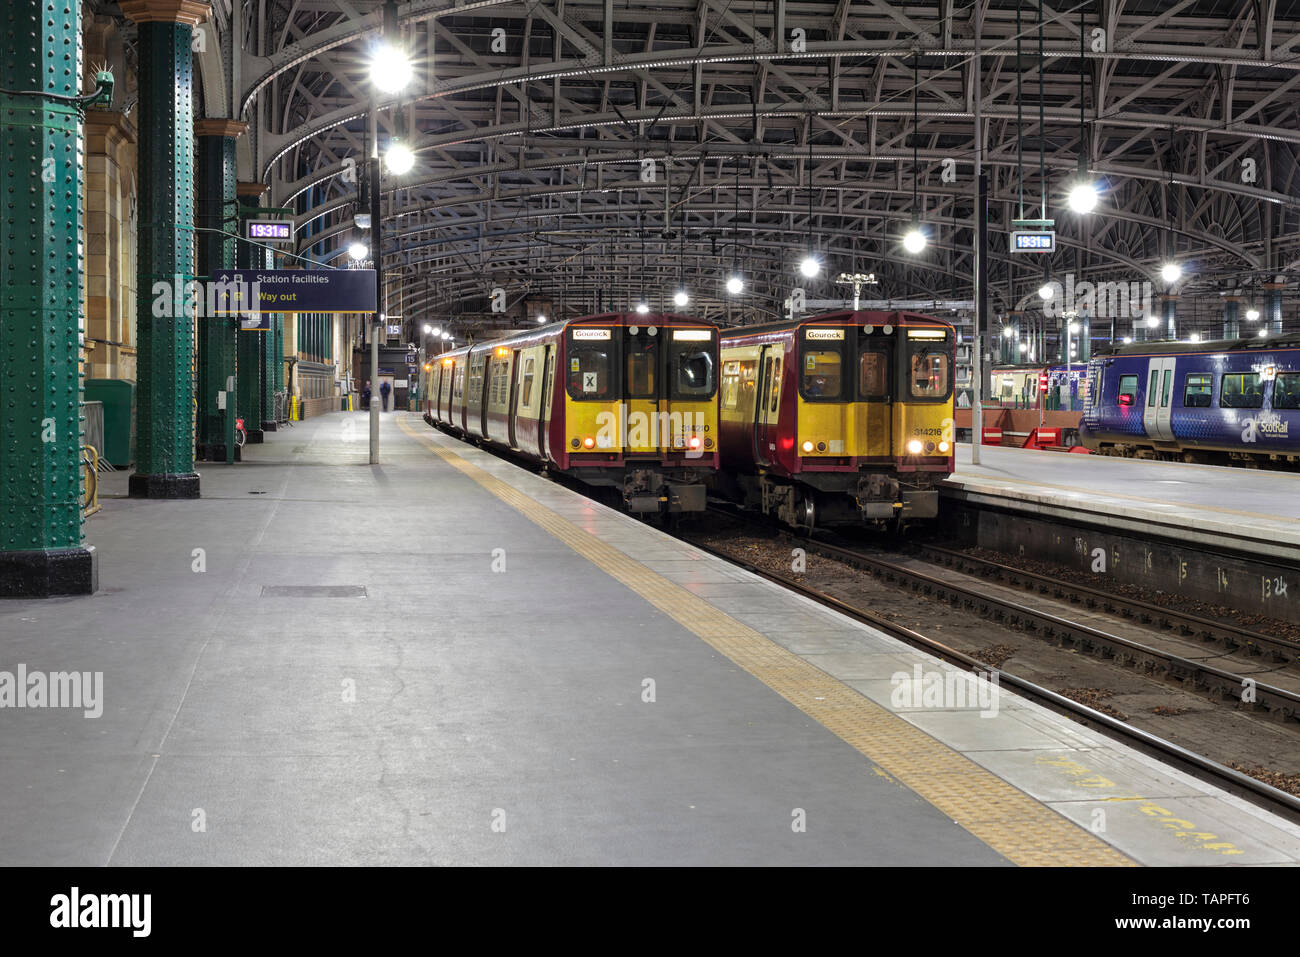 Scotrail class 314's at Glasgow Central: 314210 1905 Paisley Canal to Glasgow Central (R) 314216 1936 Glasgow Central to Wemyss Bay (L) - Stock Image